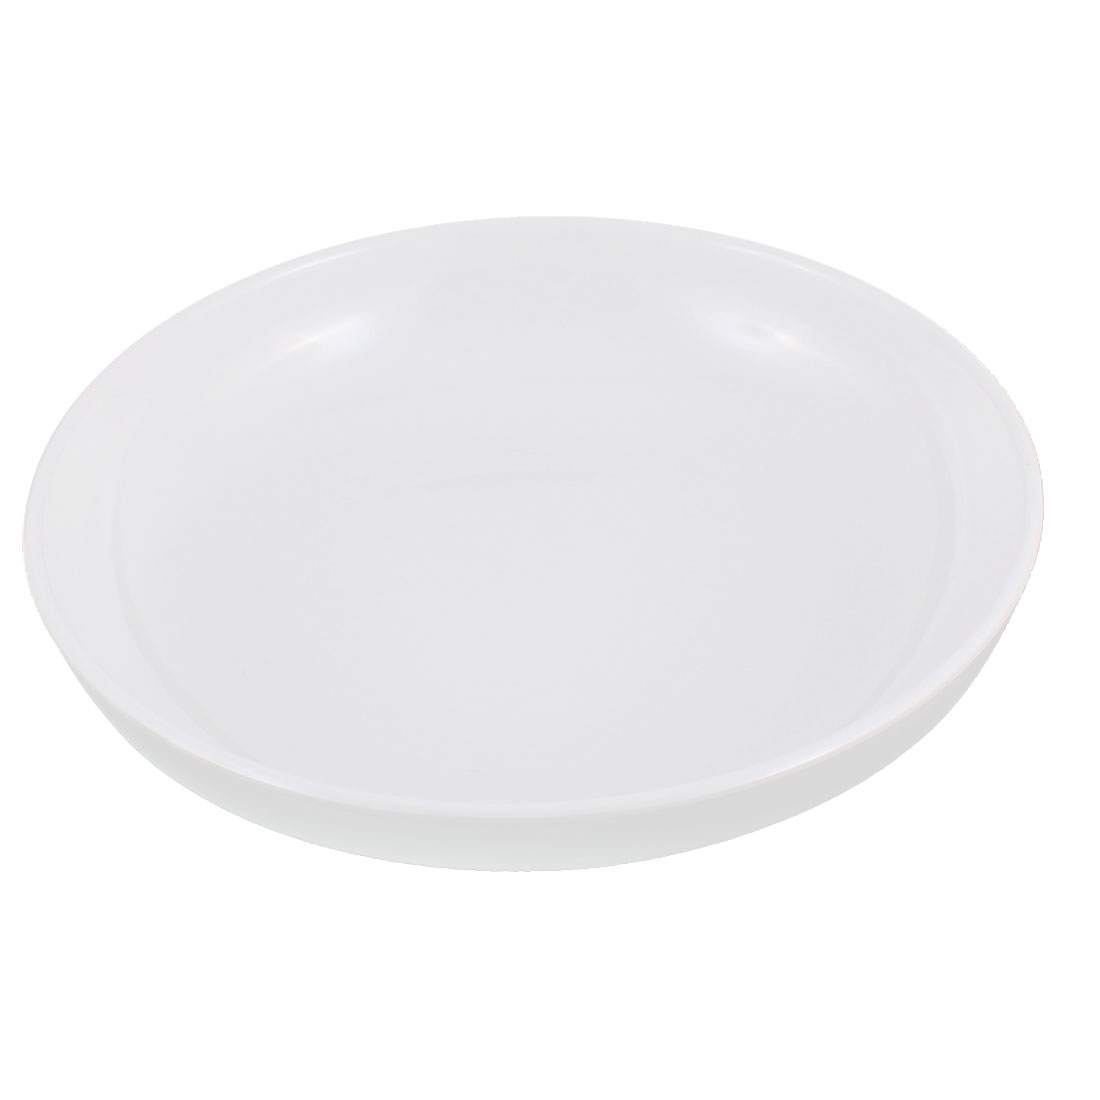 """Kitchen Round Shape Dinner Dish Container Plate White 7"""" Dia"""